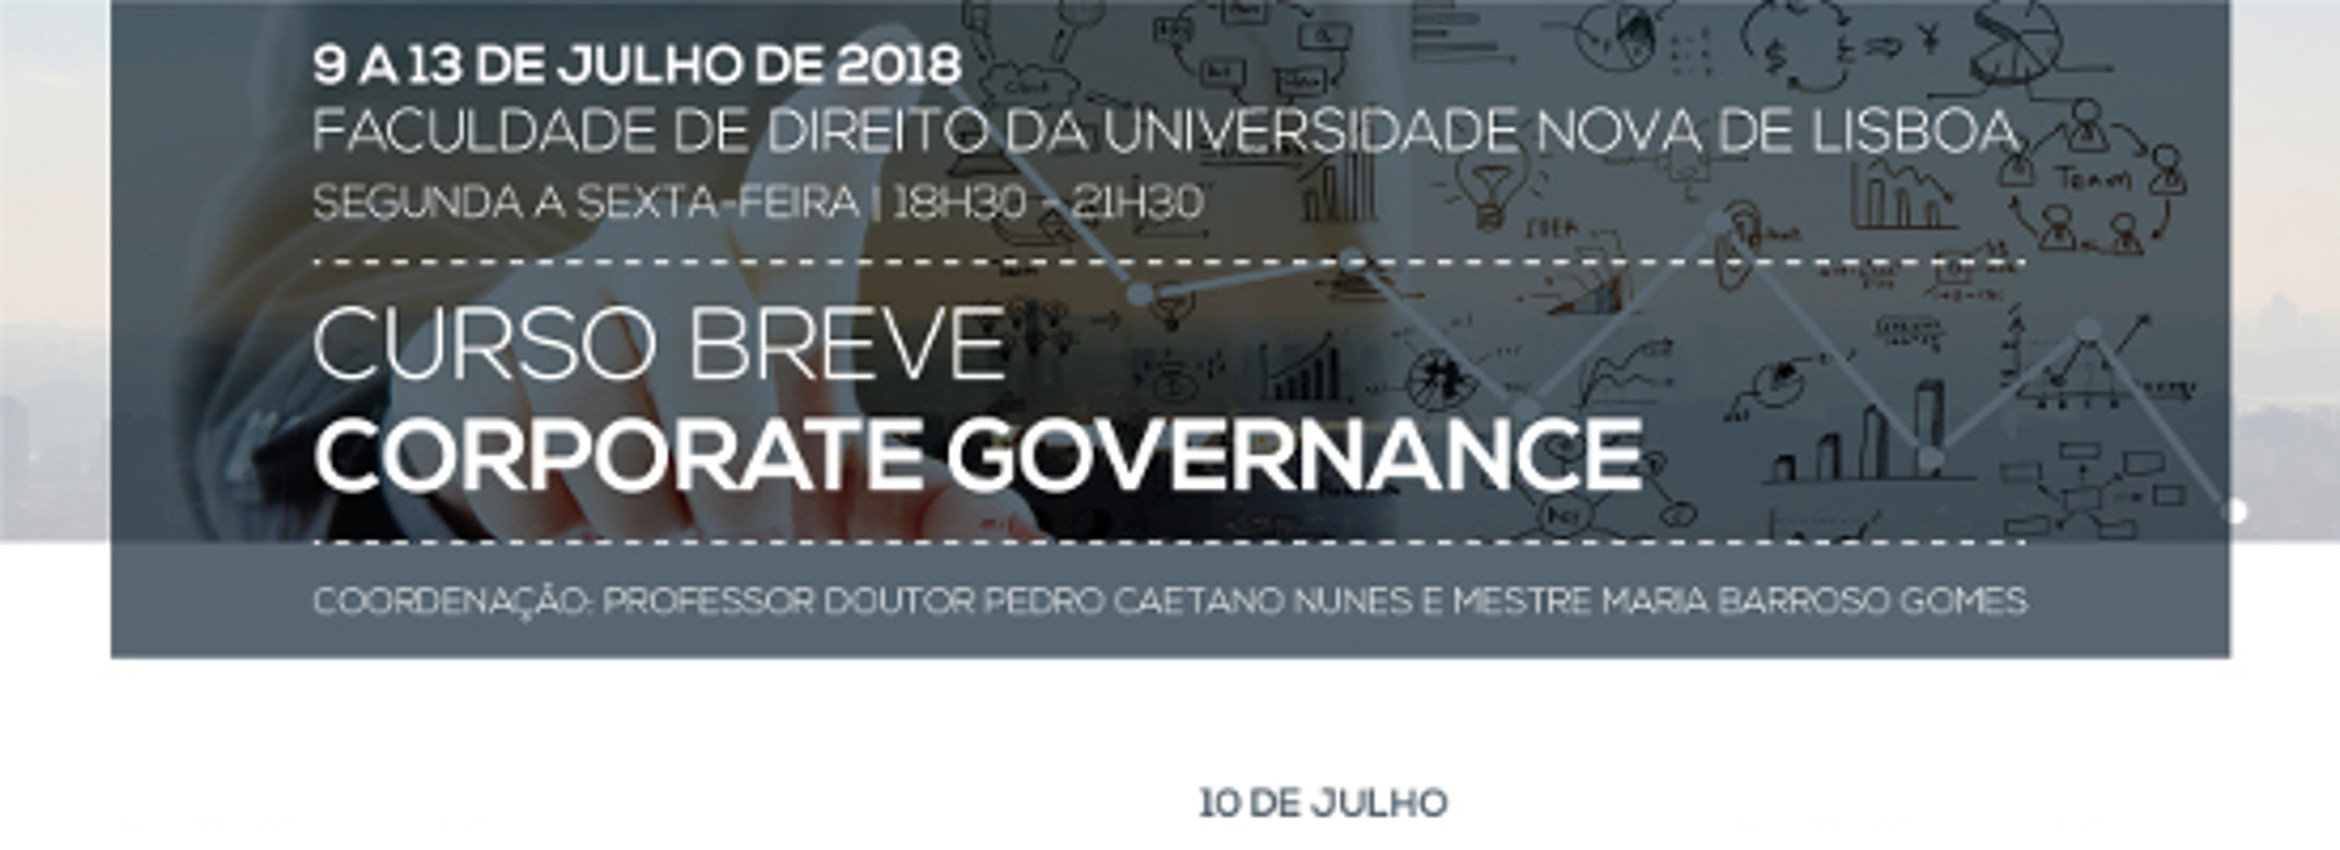 Corporate Governance - Curso Breve